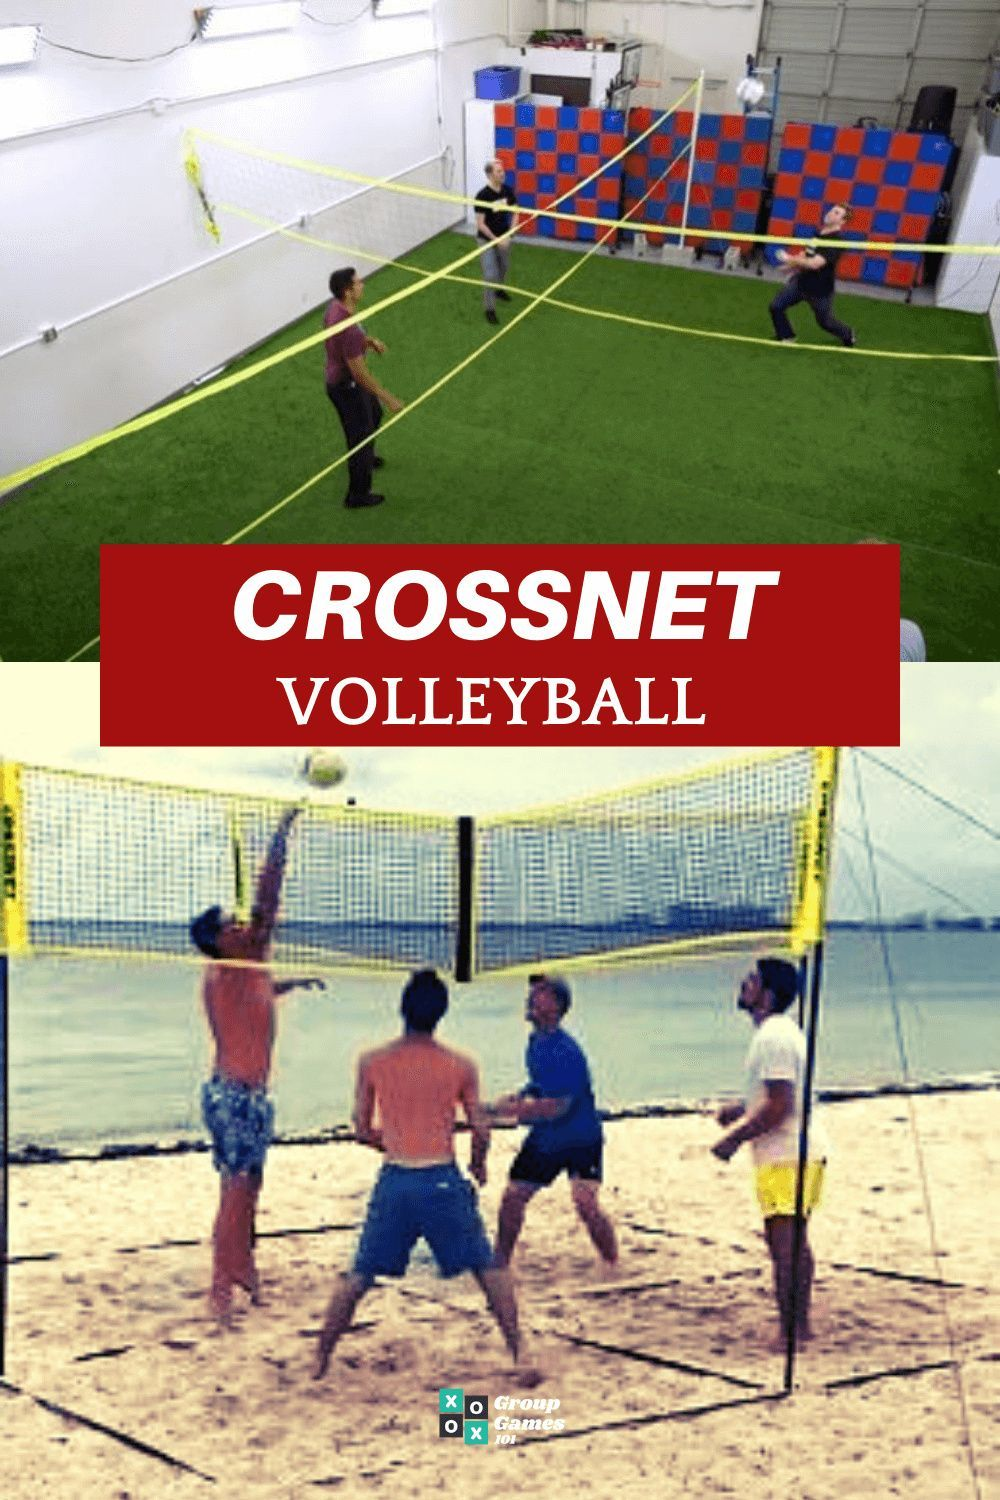 Crossnet Volleyball Rules In 2020 Games To Play Outside Outdoor Games Bachelor Party Games